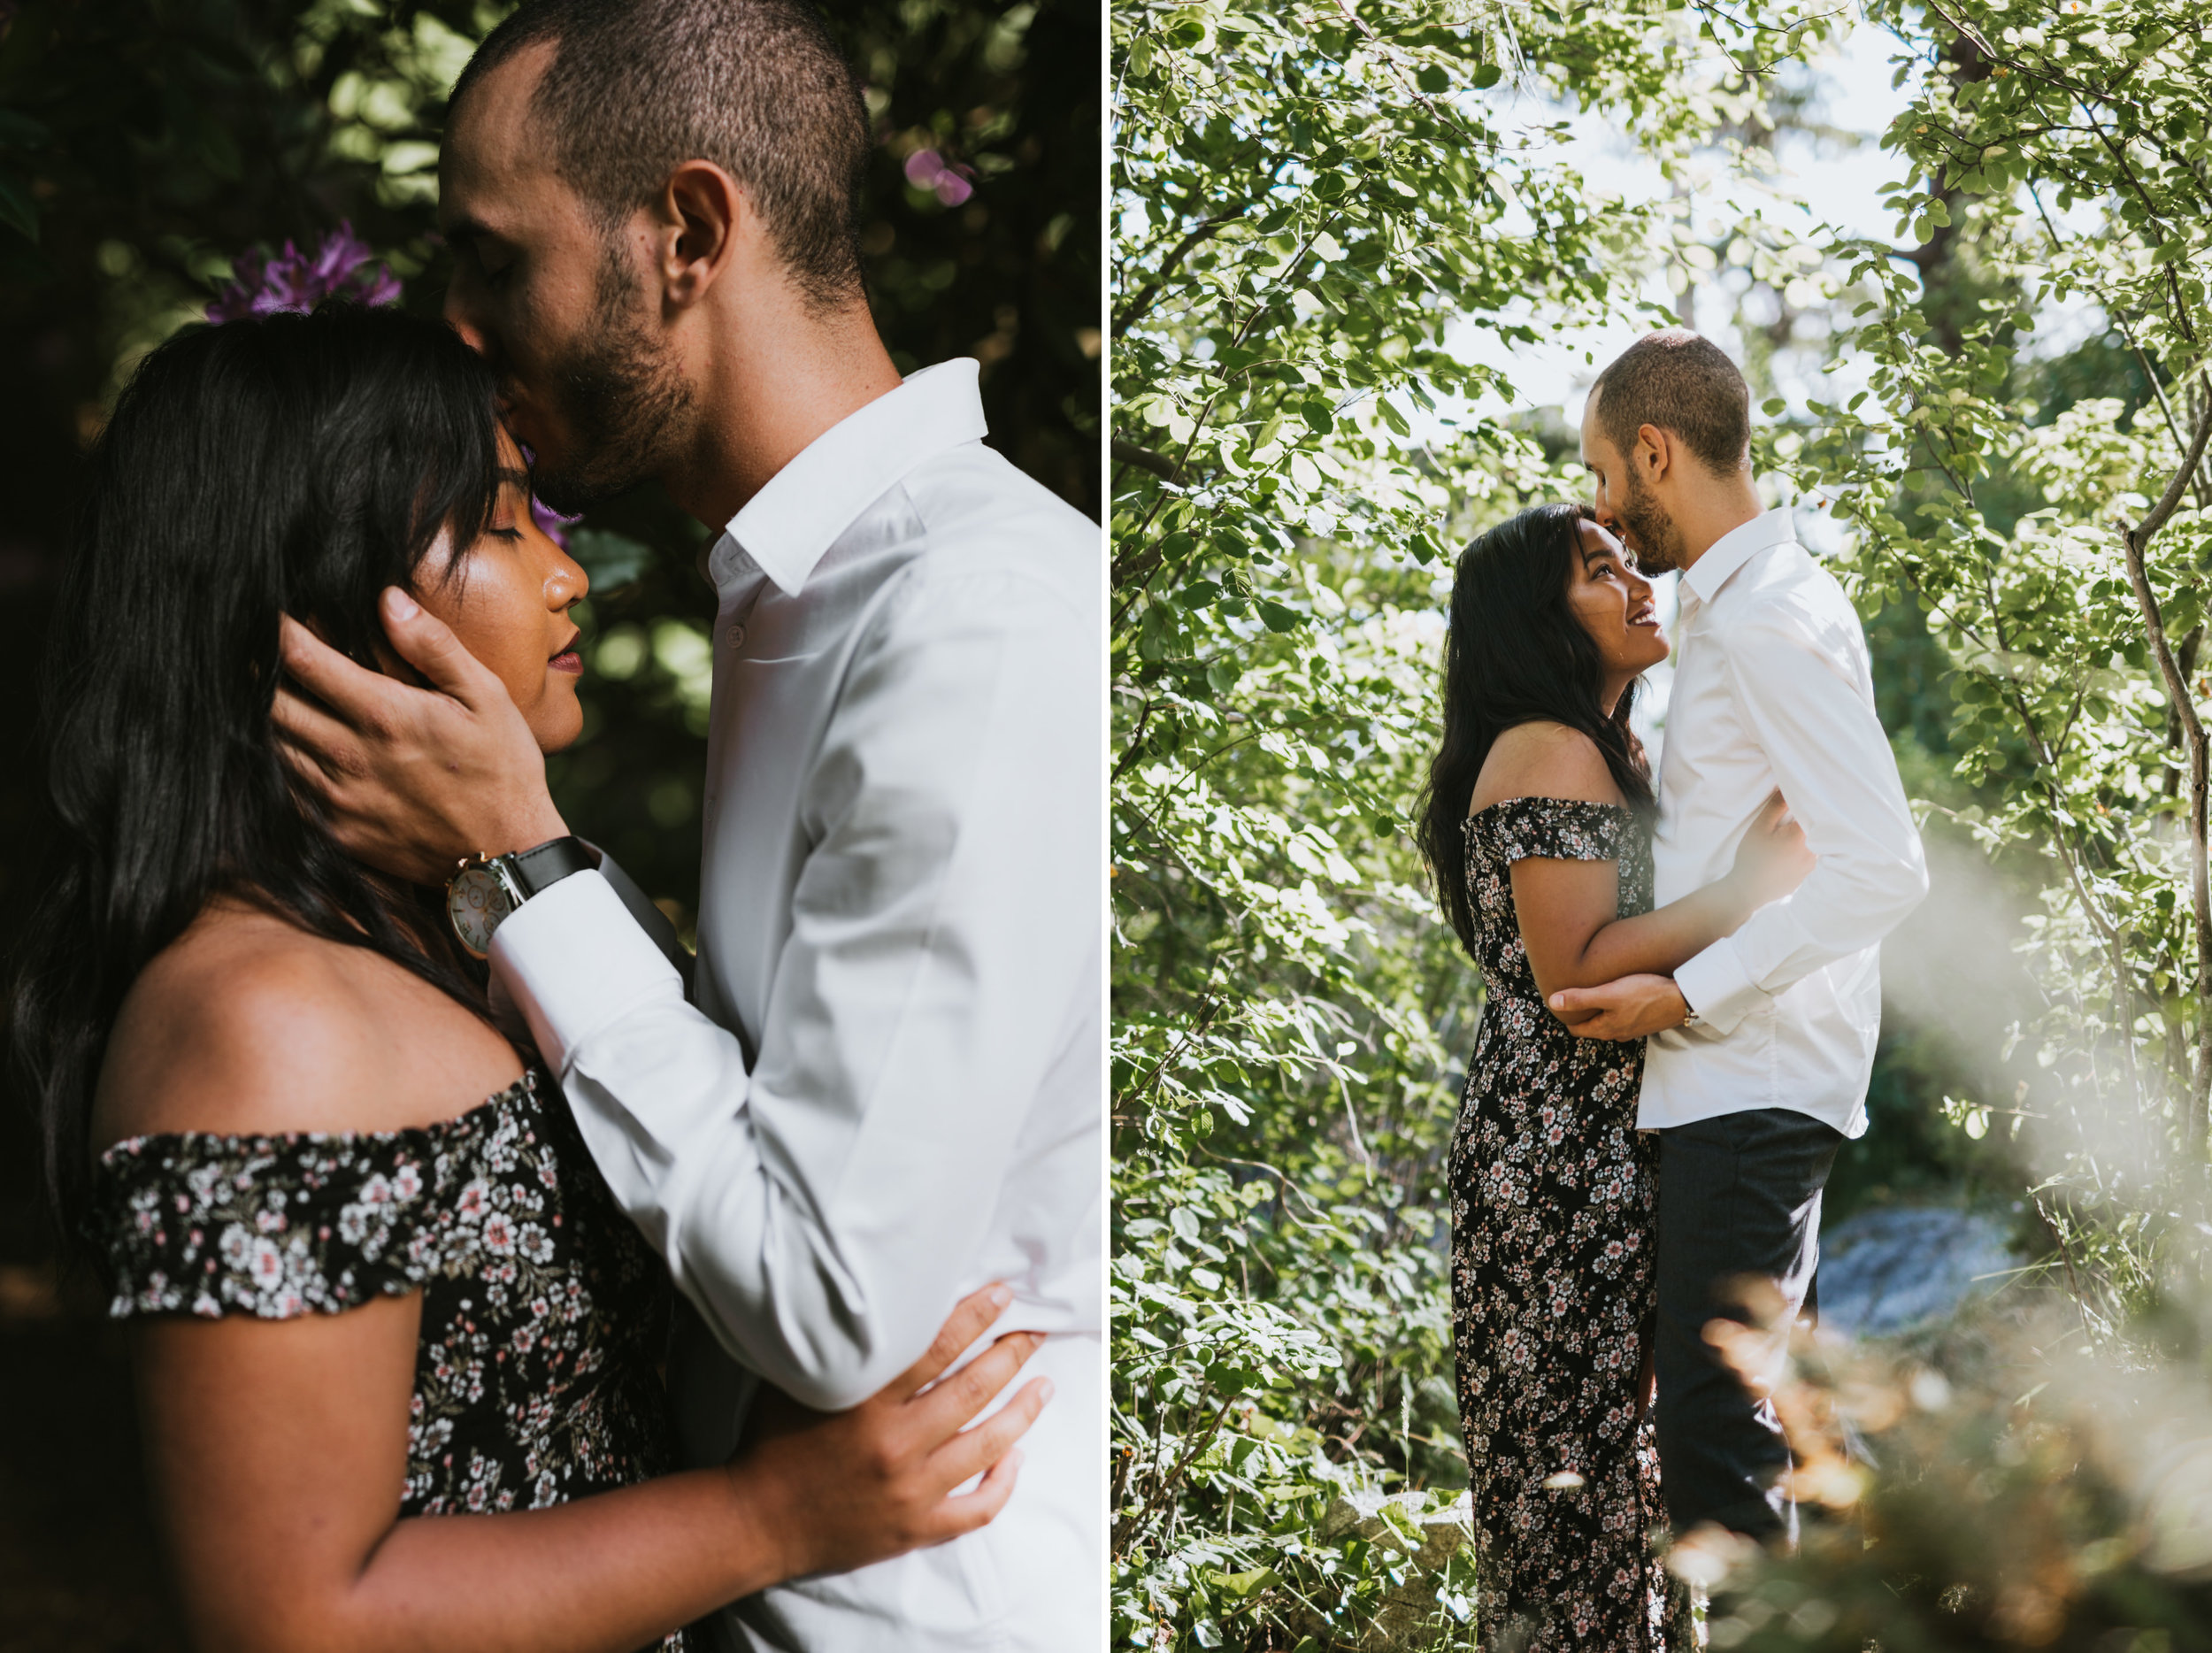 oliver-rabanes-vancouver-surrey-whytecliff-park-proposal-engagement-photography-03.jpg